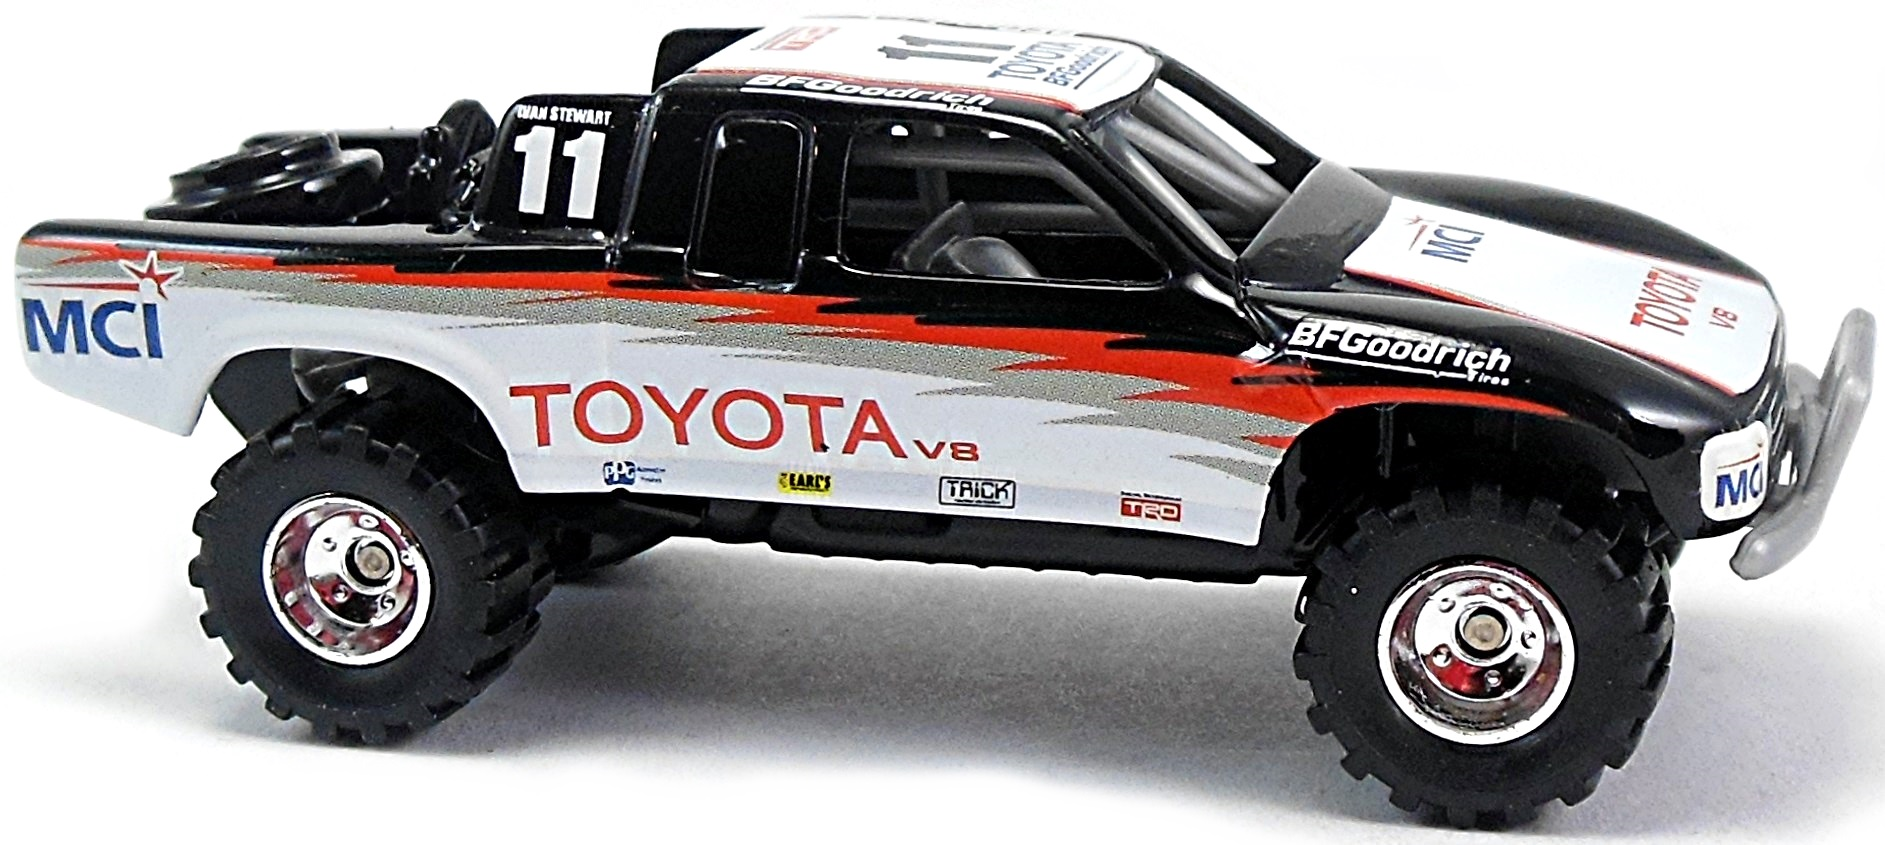 4 wheel drive rc trucks with Toyota Baja Truck 80mm 2000 on Traxxas as well 18089285 likewise Lamborghini Urus Suv Concept Revealed together with Slash 2wd Rtr With Tq 24 Radio Gordon 7 Orange P Tra580341d3 additionally 79F3504x4 Latiat Brown.